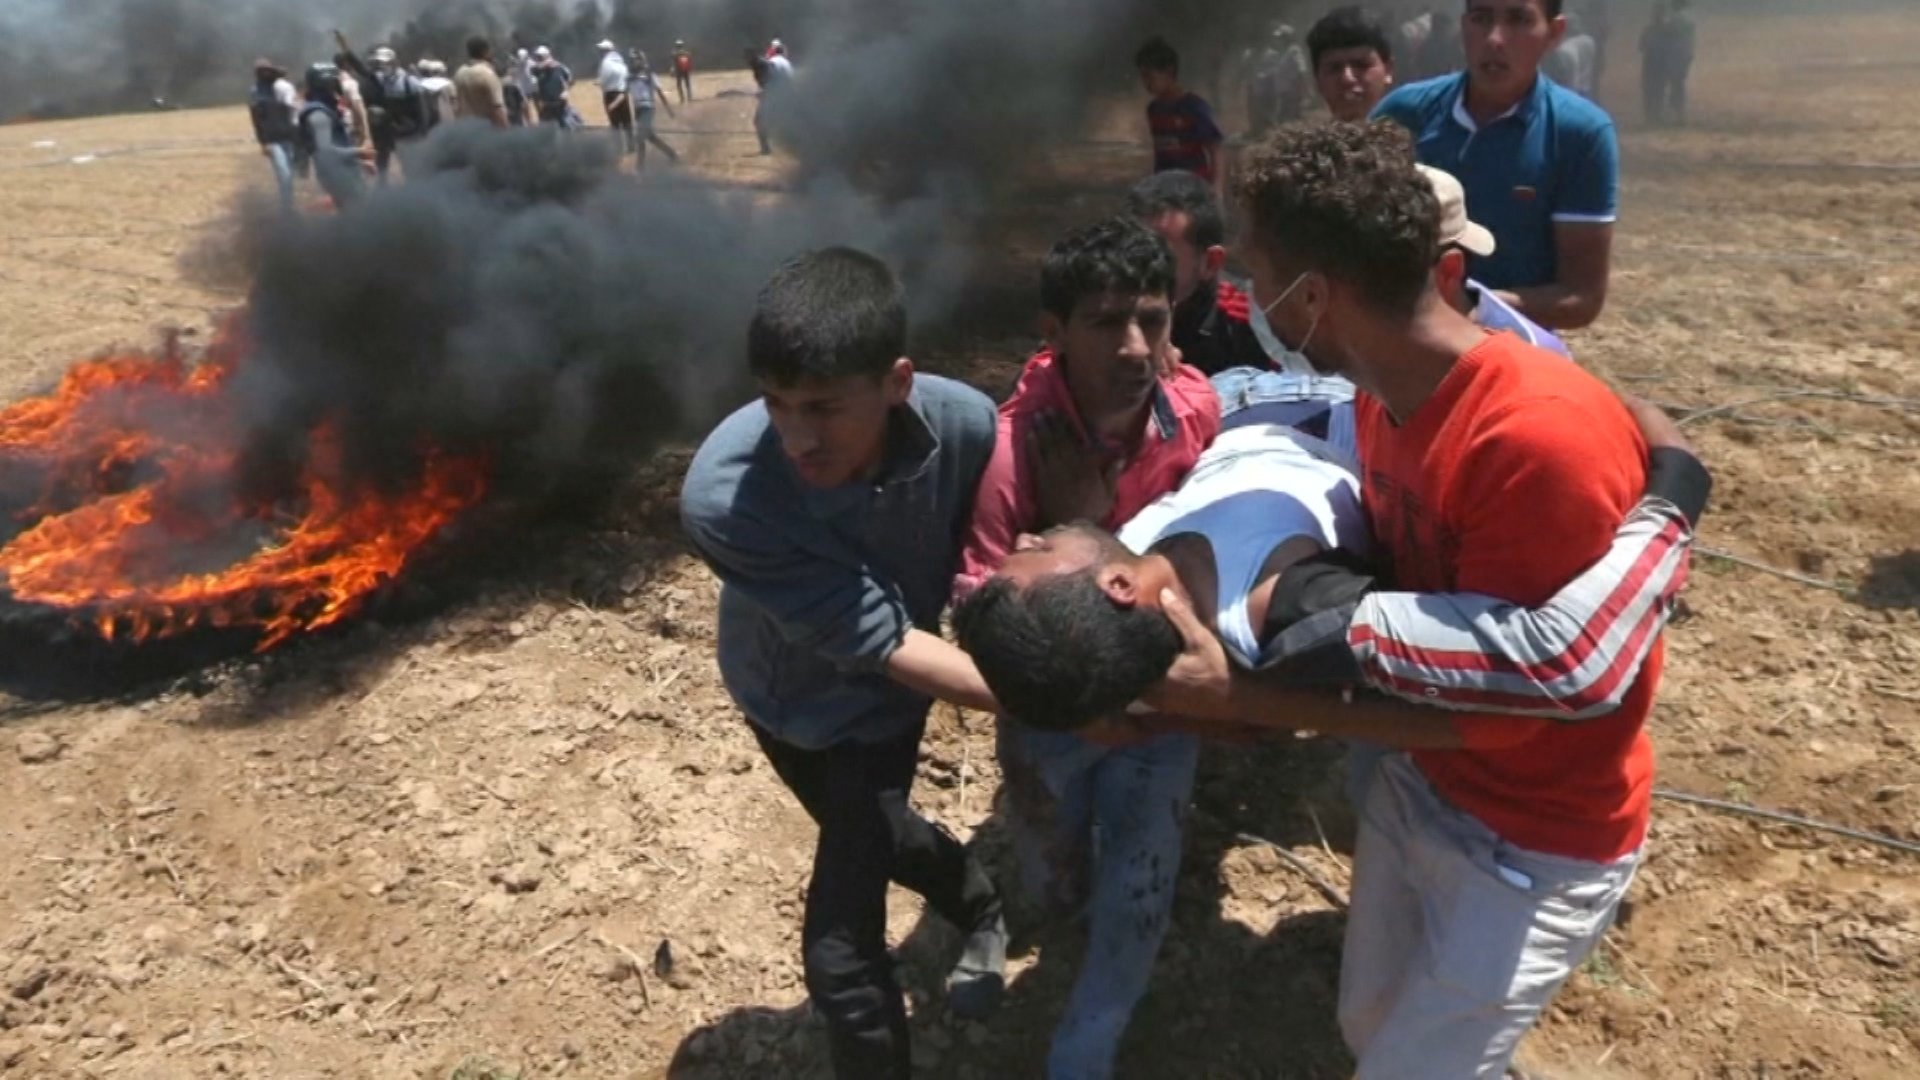 Death Toll in Gaza Rises to 61, After Israeli Military Massacres Protesters https://t.co/q74YmY8t8s #Gaza https://t.co/1ZsLt6BvrP